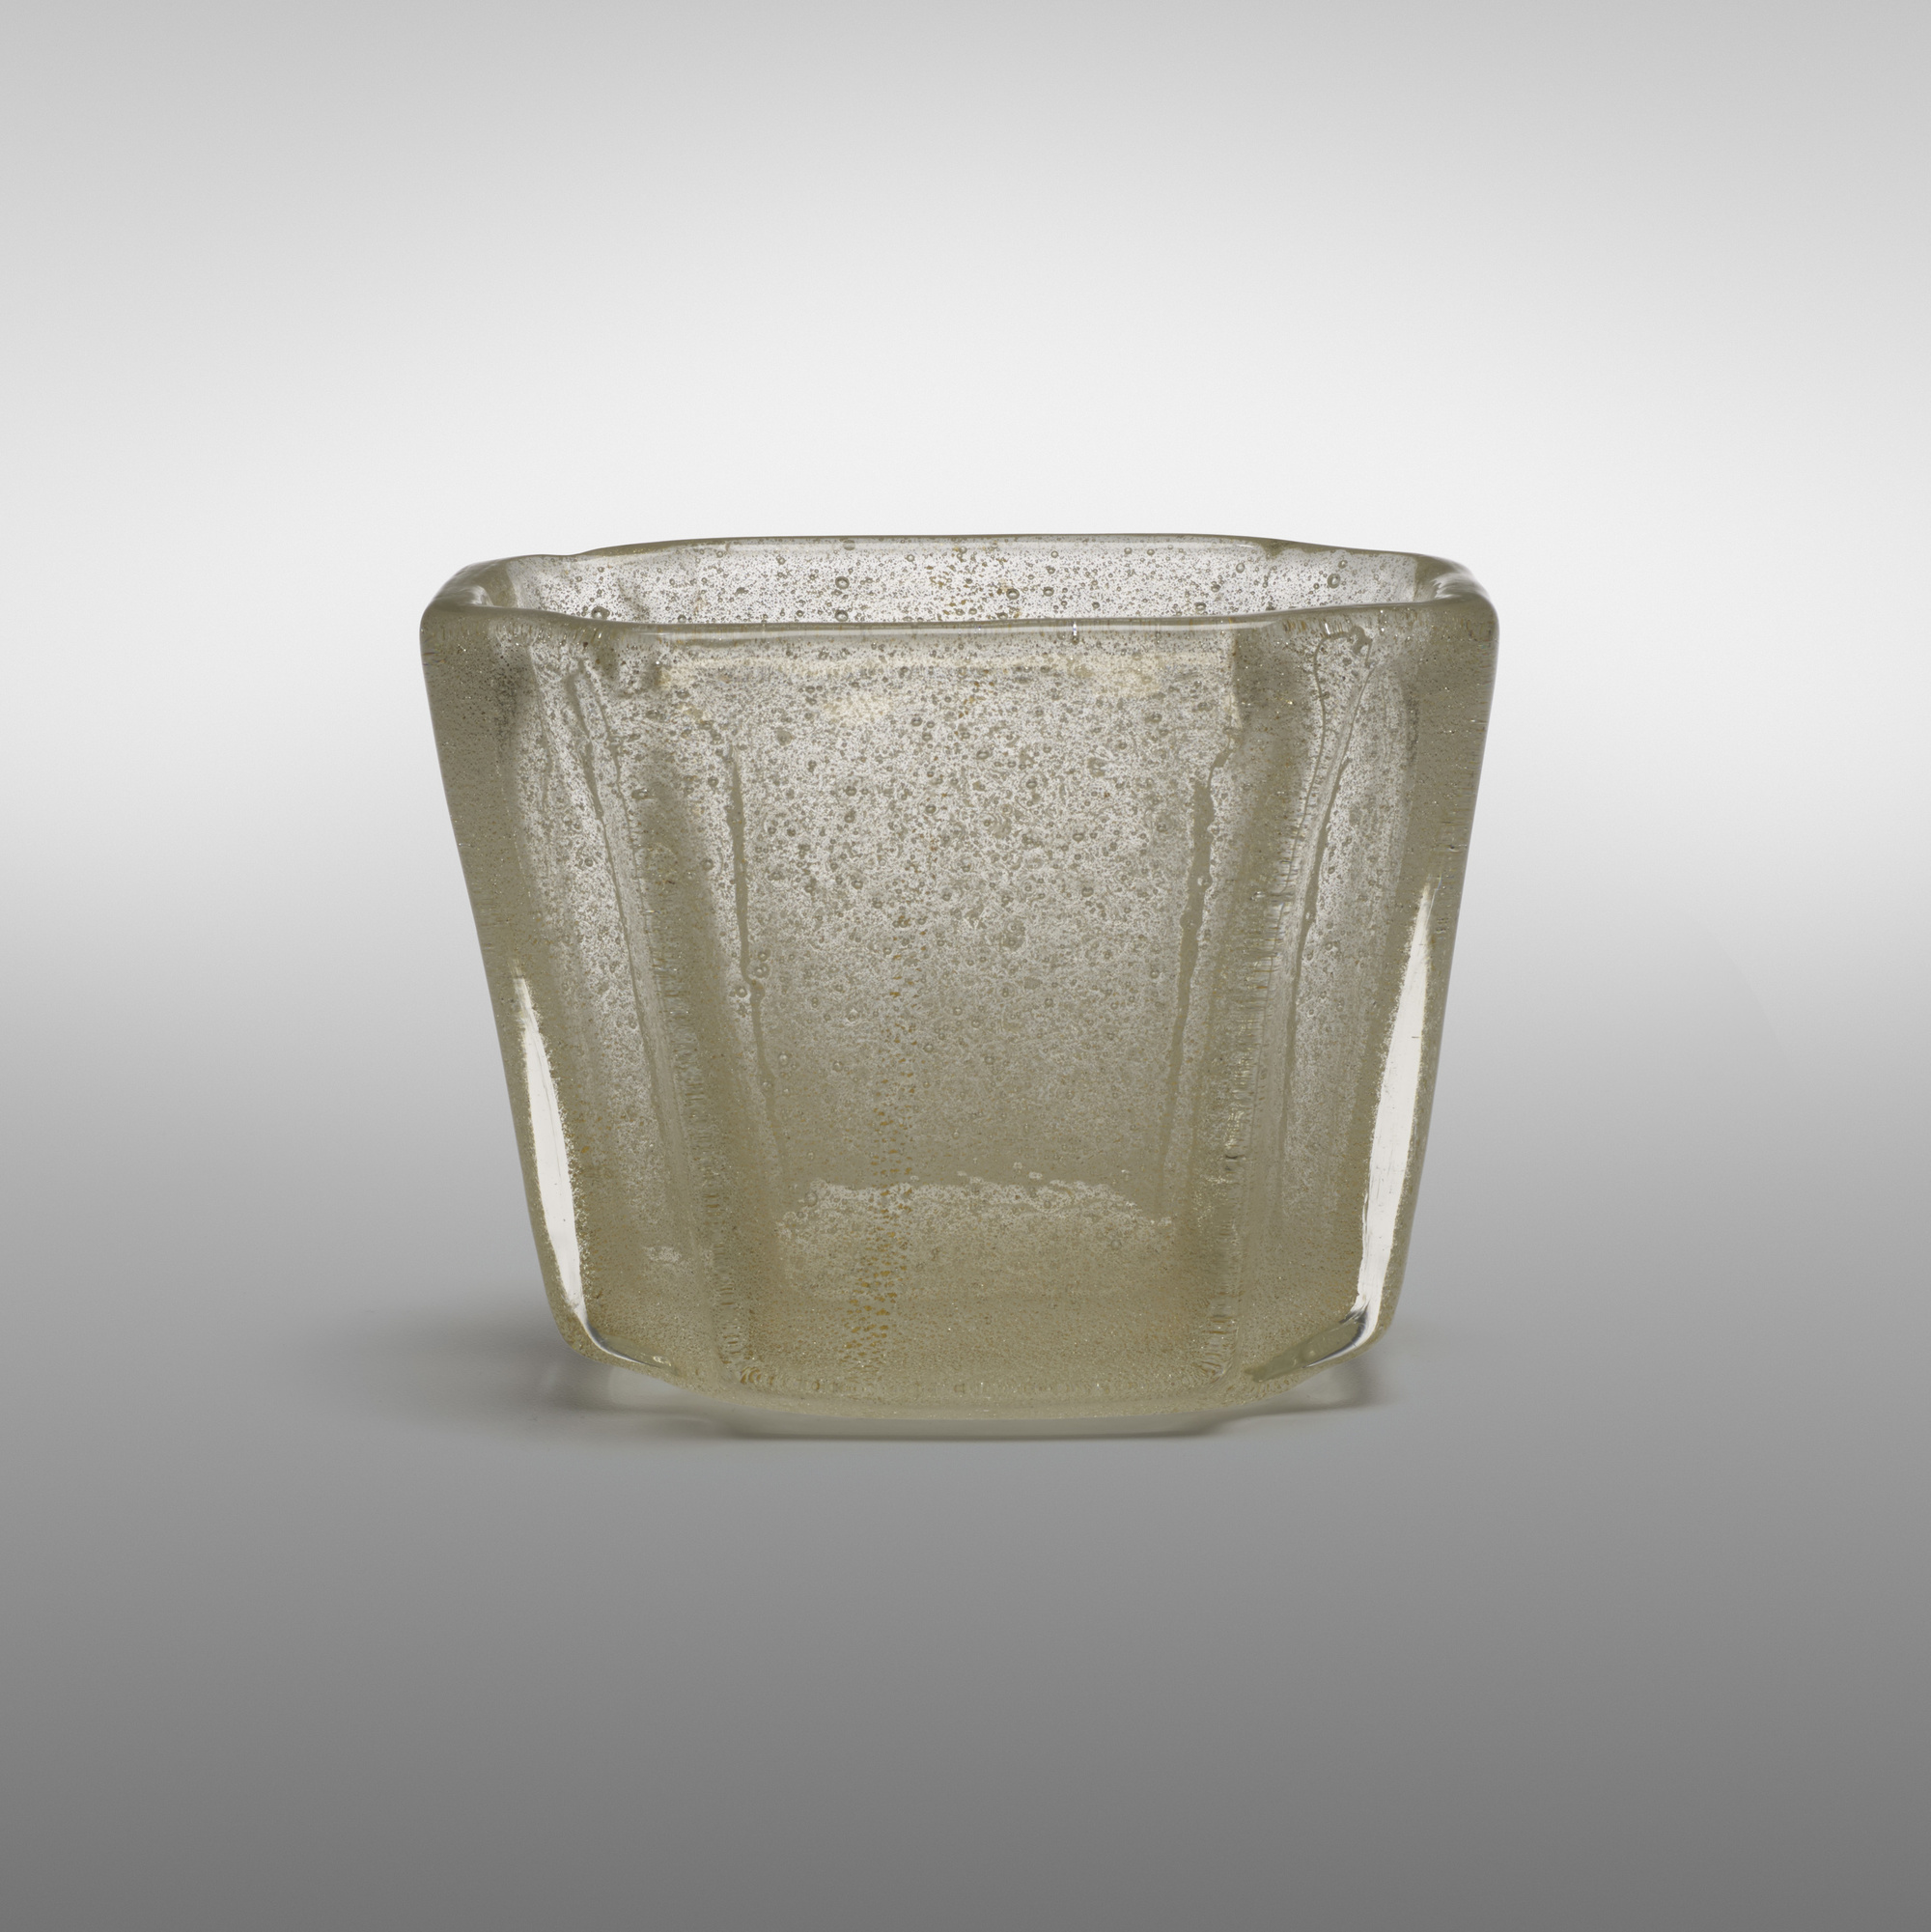 152 carlo scarpa sommerso a bollicine vase model 3569 152 carlo scarpa sommerso a bollicine vase model 3569 1 of 3 floridaeventfo Image collections